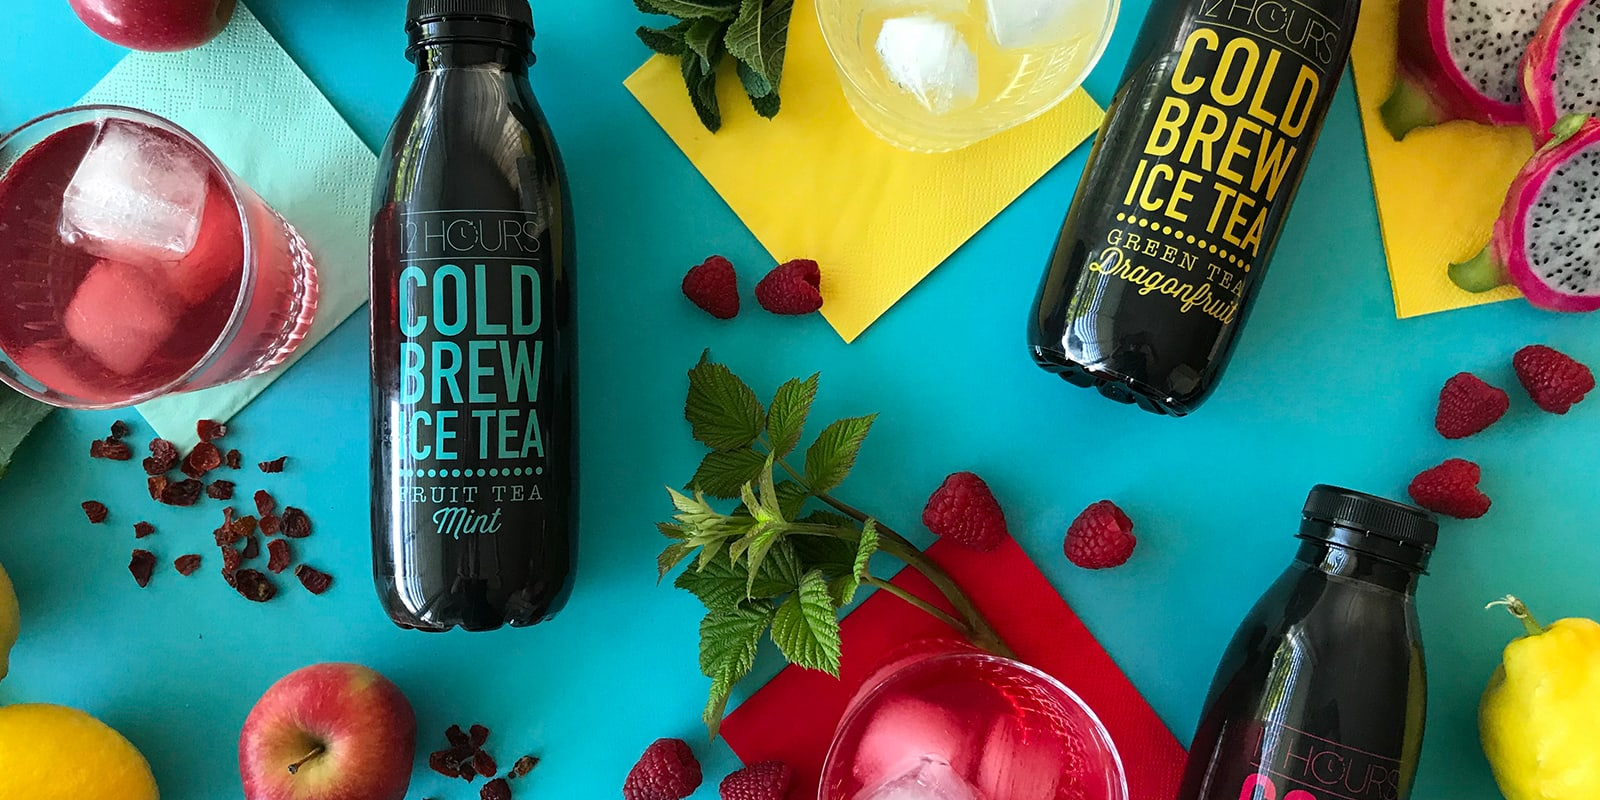 Cold Brew Ice Tea